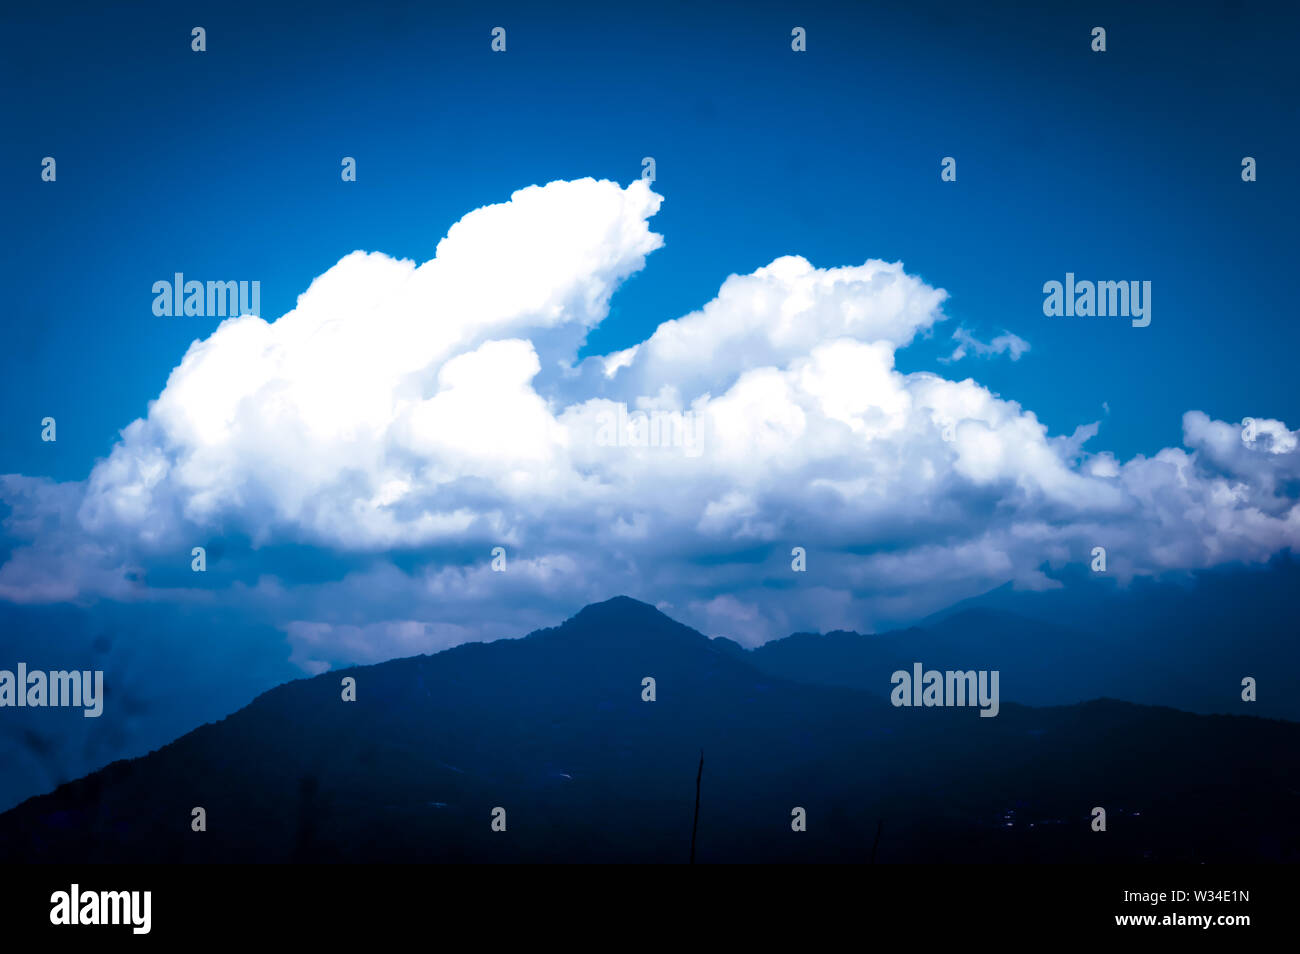 Background photo of Cloudy overcast morning at himalayan mountains. Dreamy landscape. Fluffy weather. Beauty of wild east asian indian nature. Magnifi Stock Photo